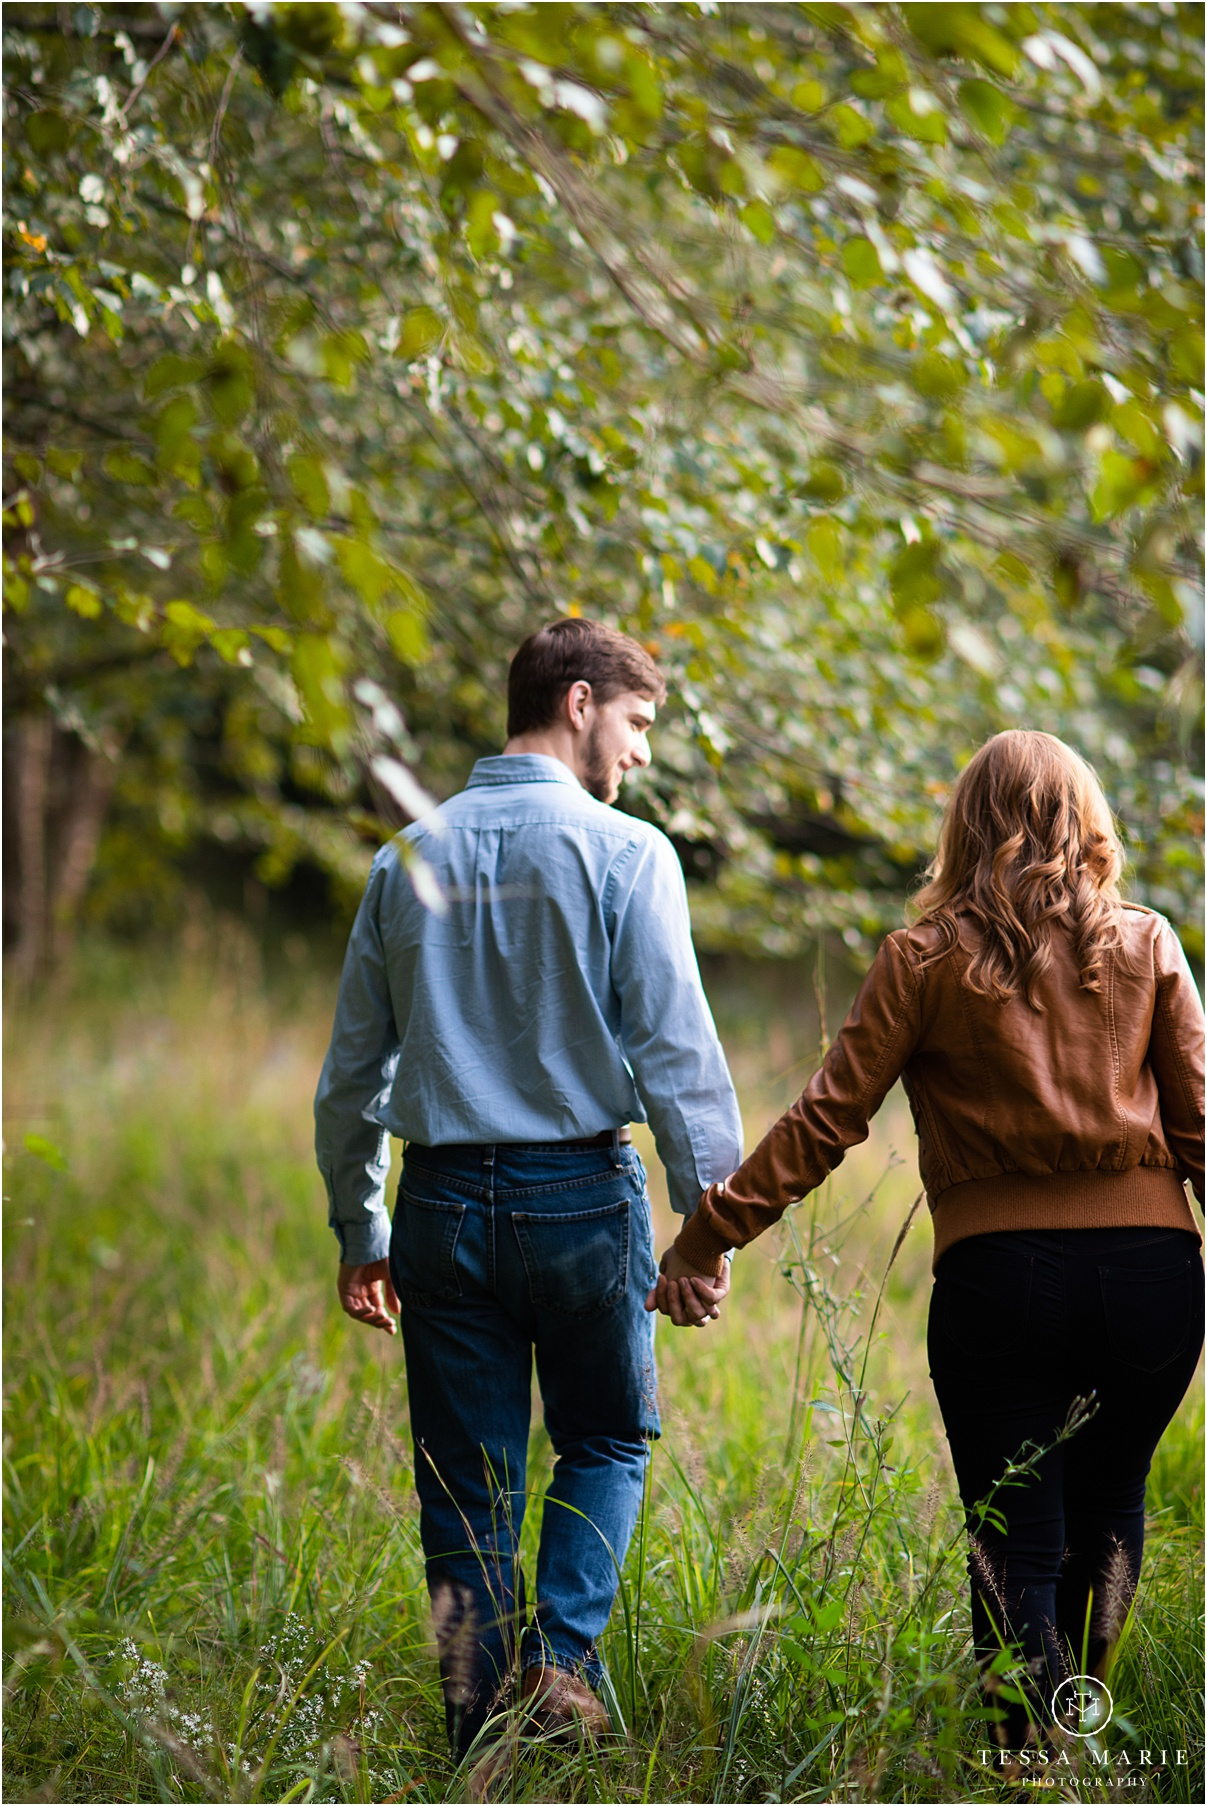 Tessa_marie_photography_wedding_photographer_engagement_pictures_river_engagement_0001.jpg